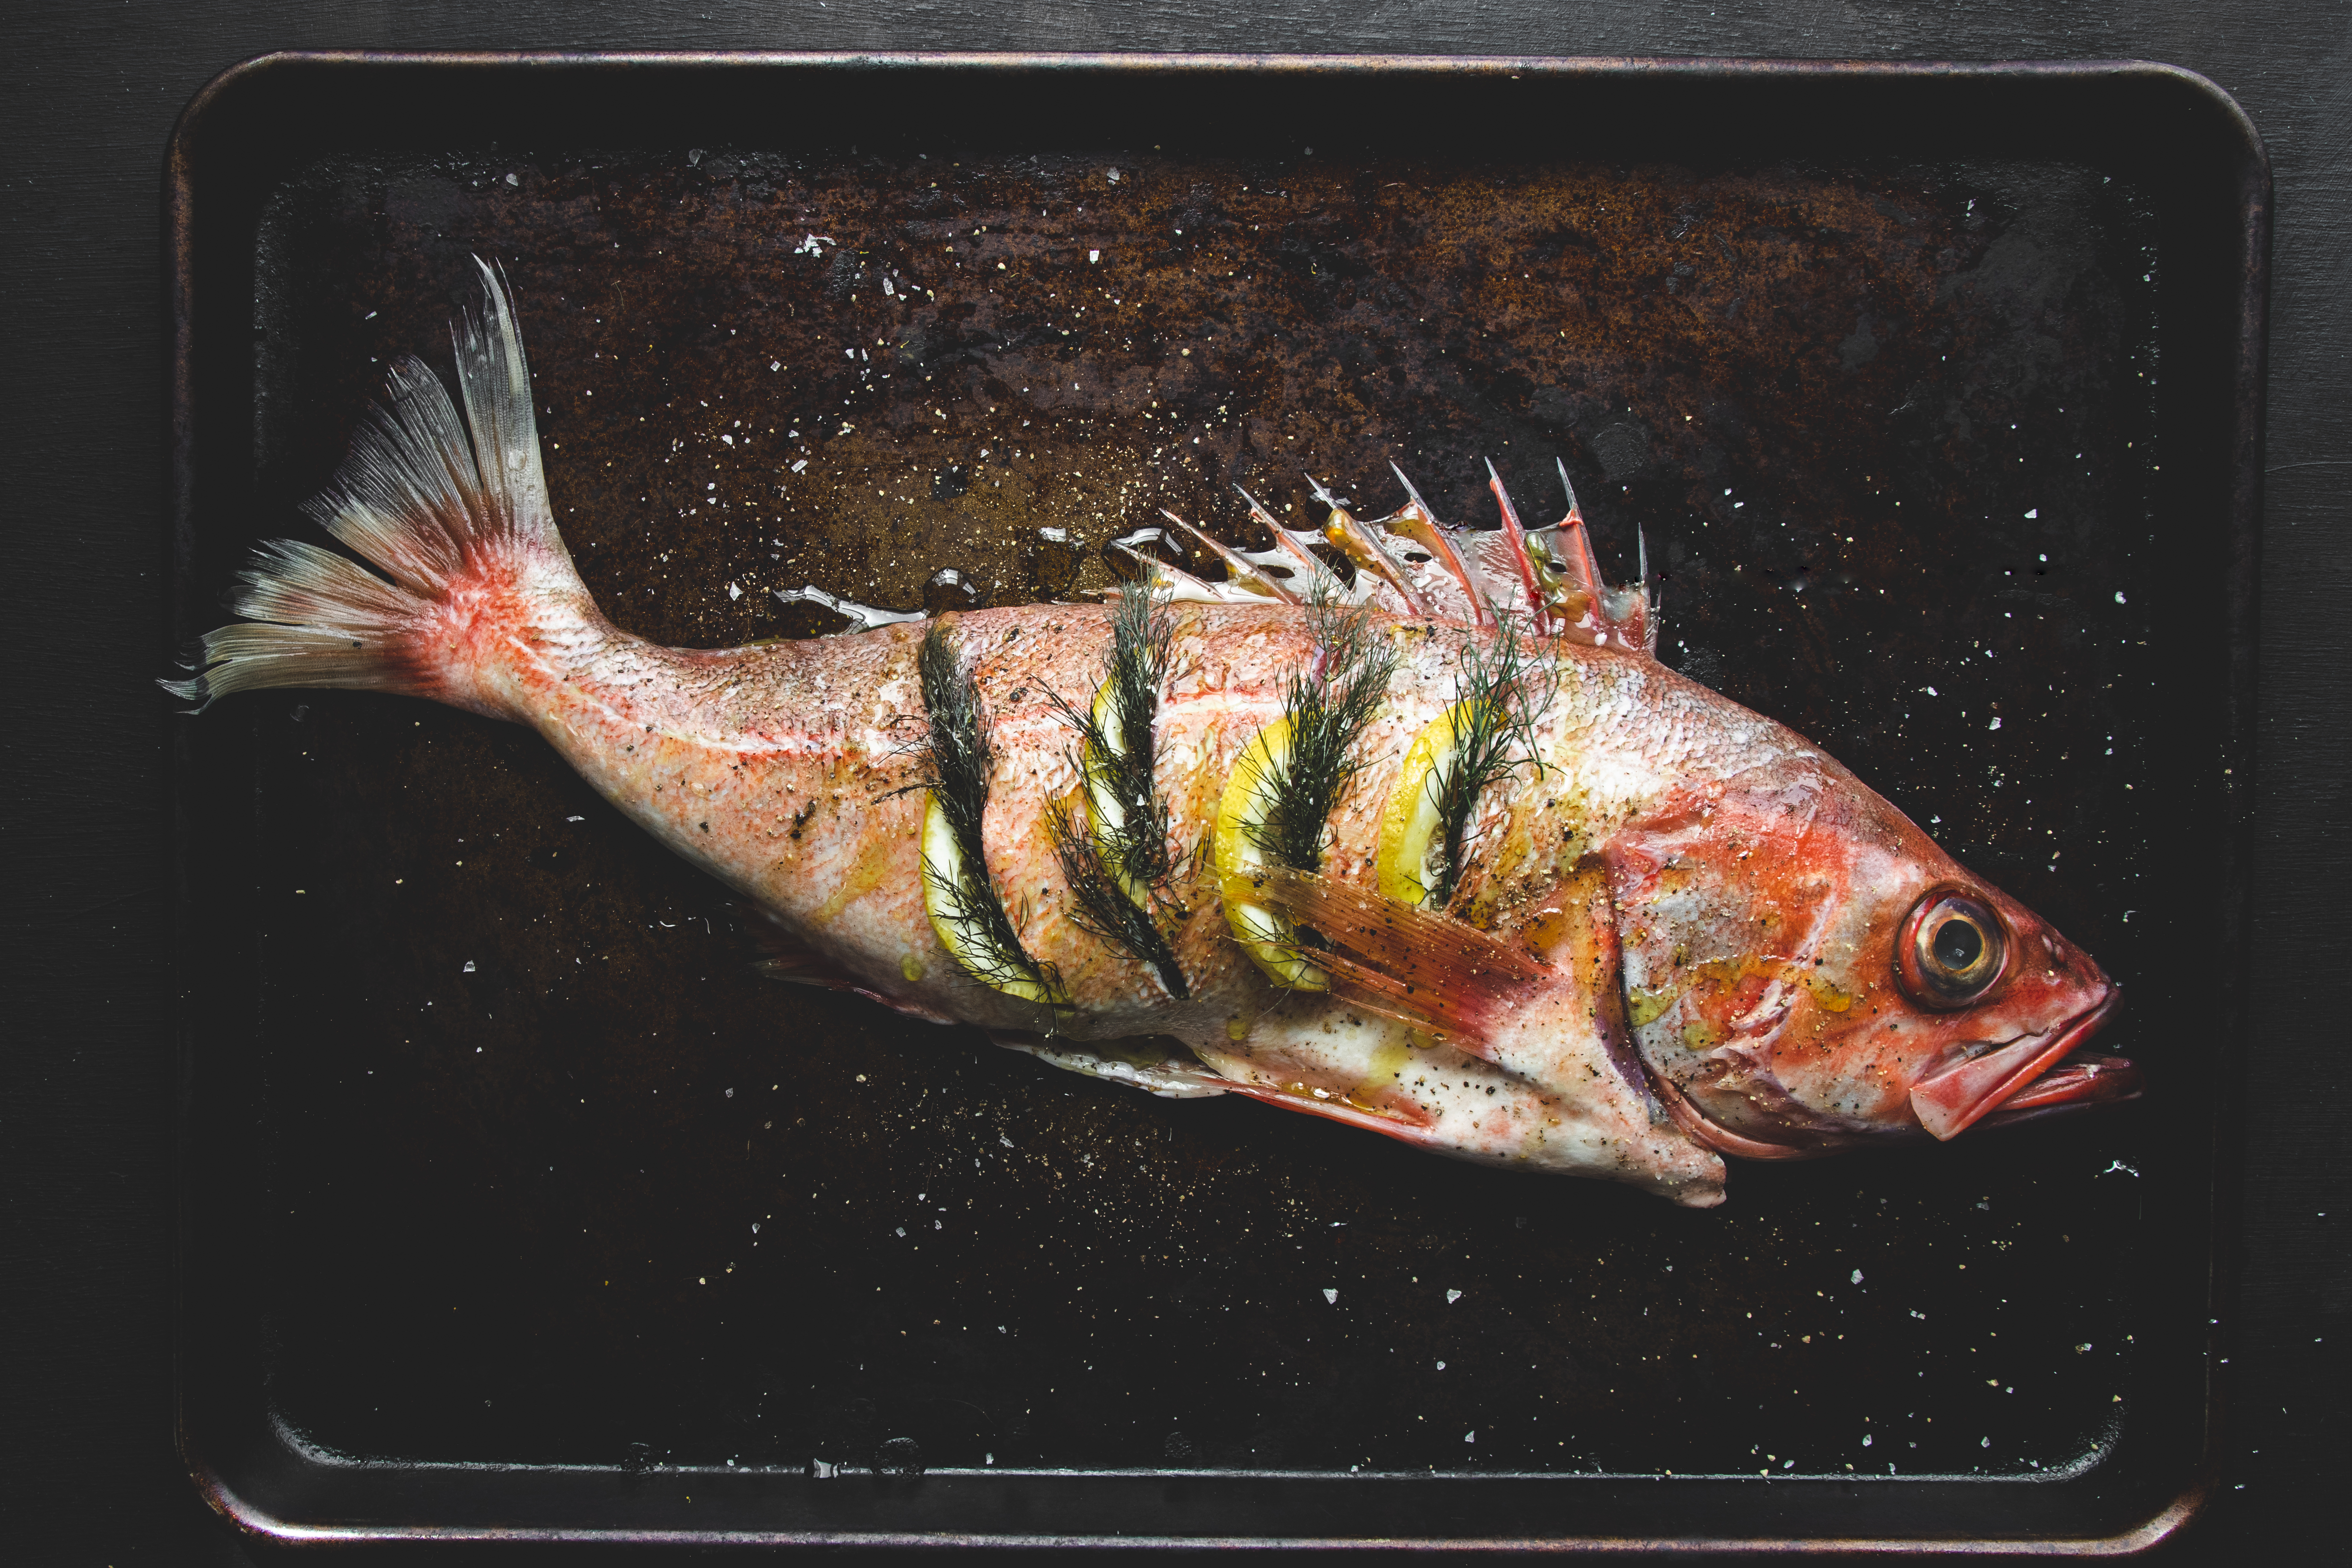 chili pepper rockfish stuffed with lemon and fennel